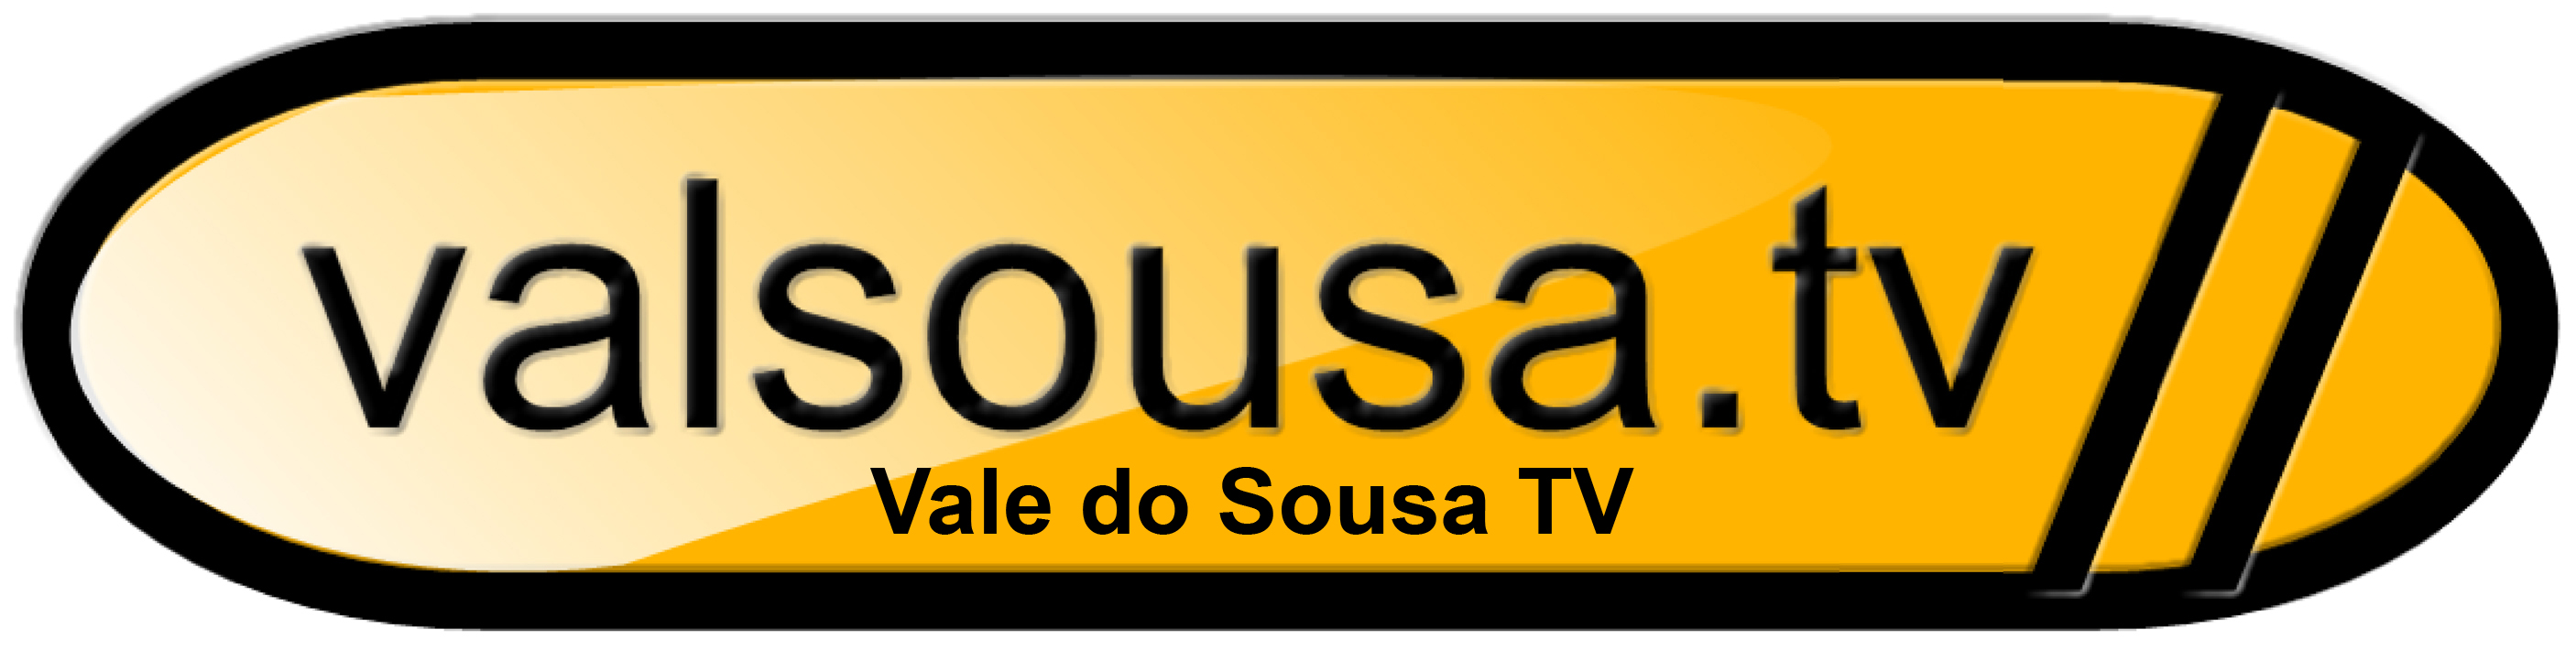 valsousa.tv - Vale do Sousa TV